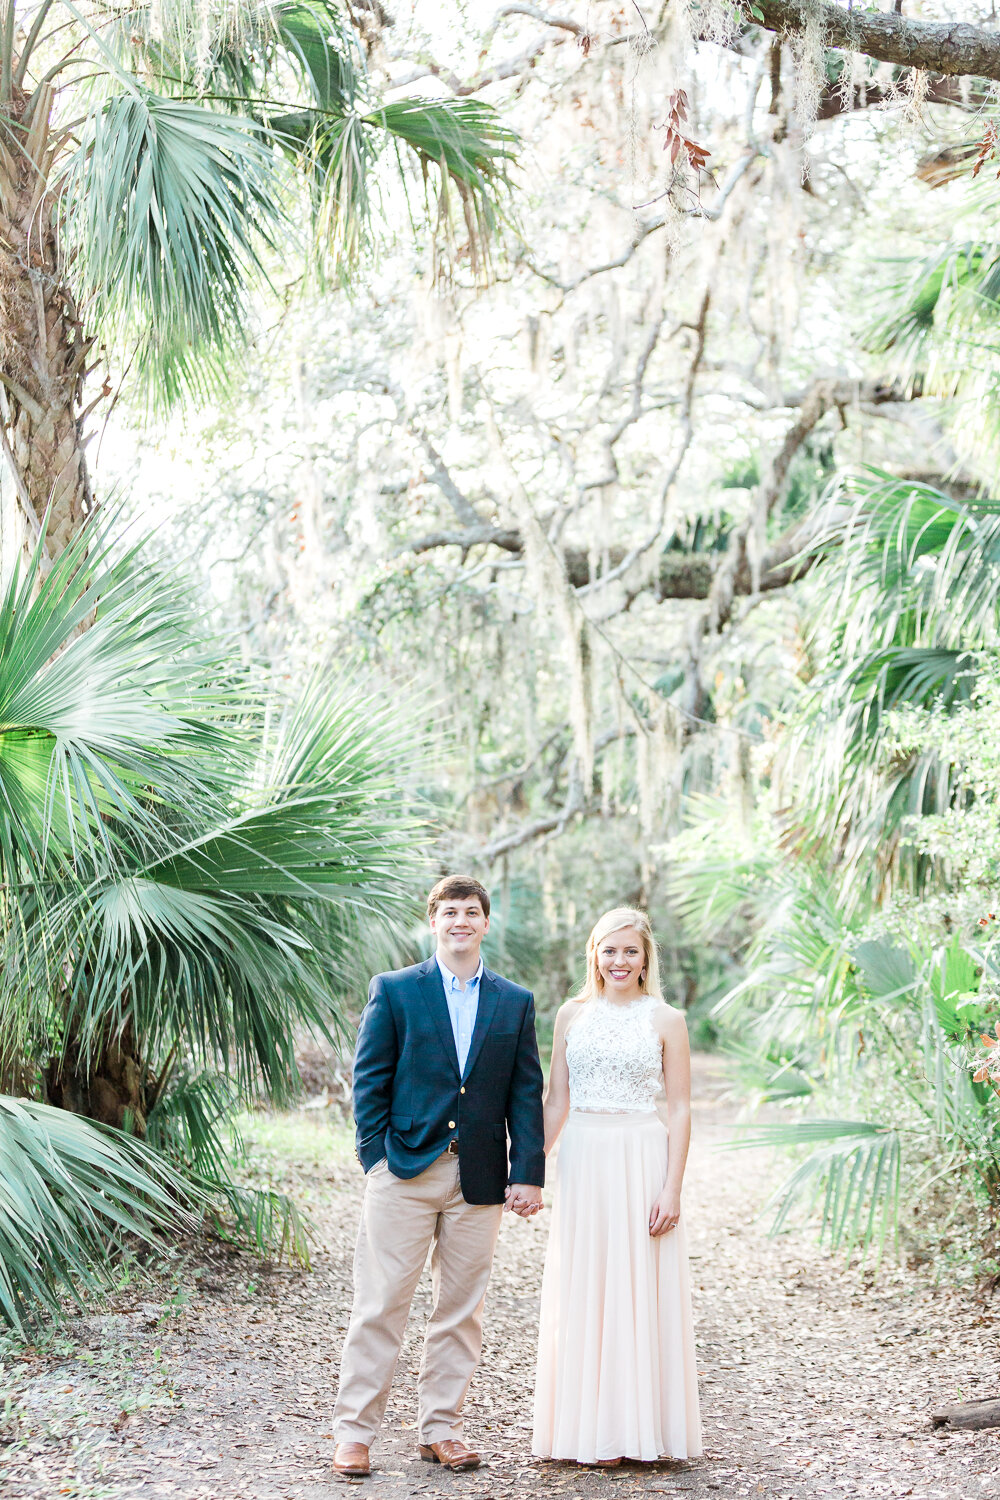 Hanna Park - one of the best photoshoot locations in around Jacksonville, FL